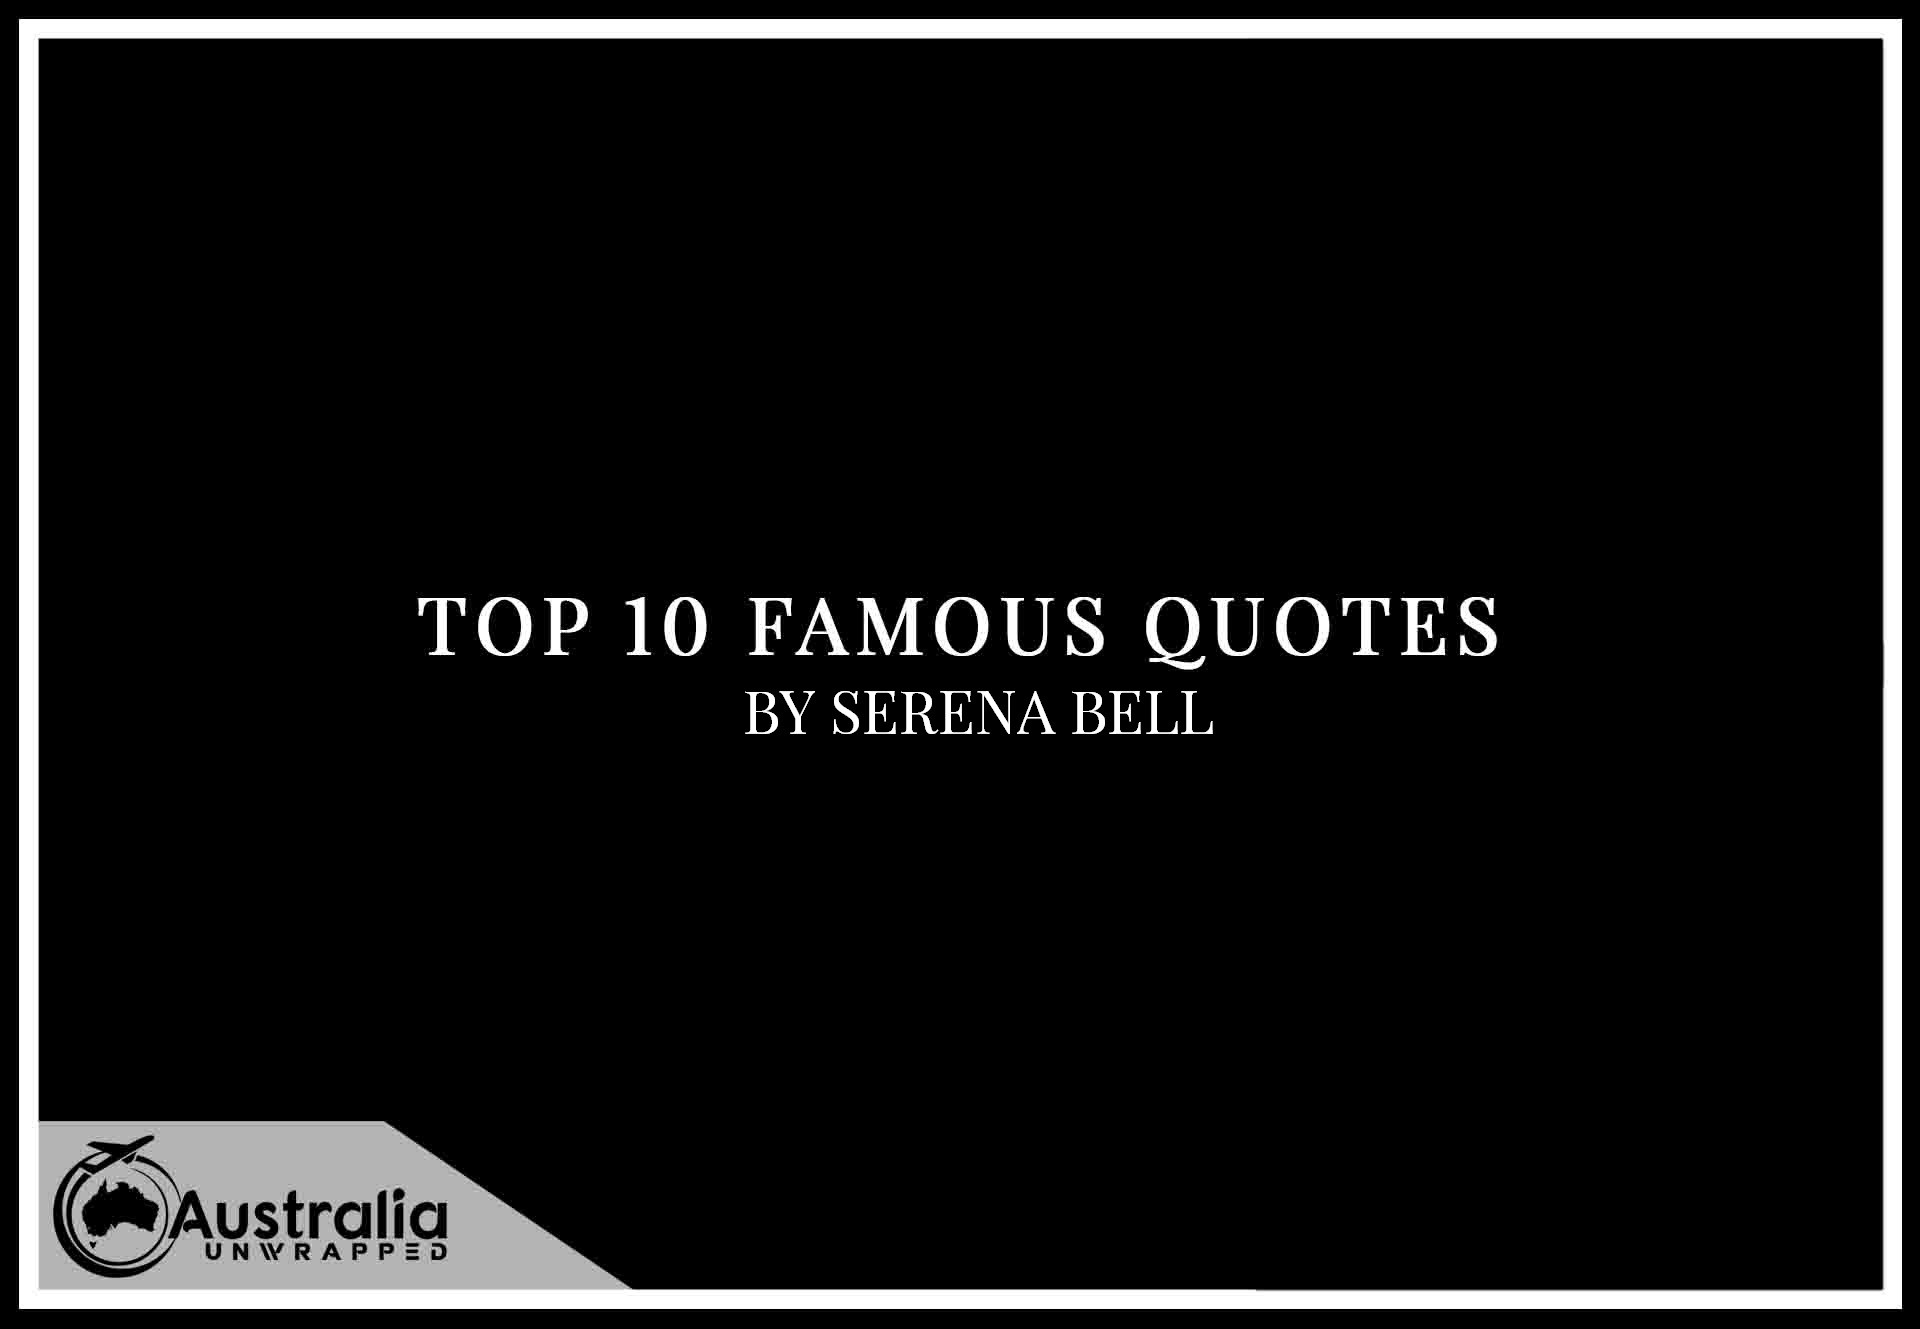 Top 10 Famous Quotes by Author Serena Bell